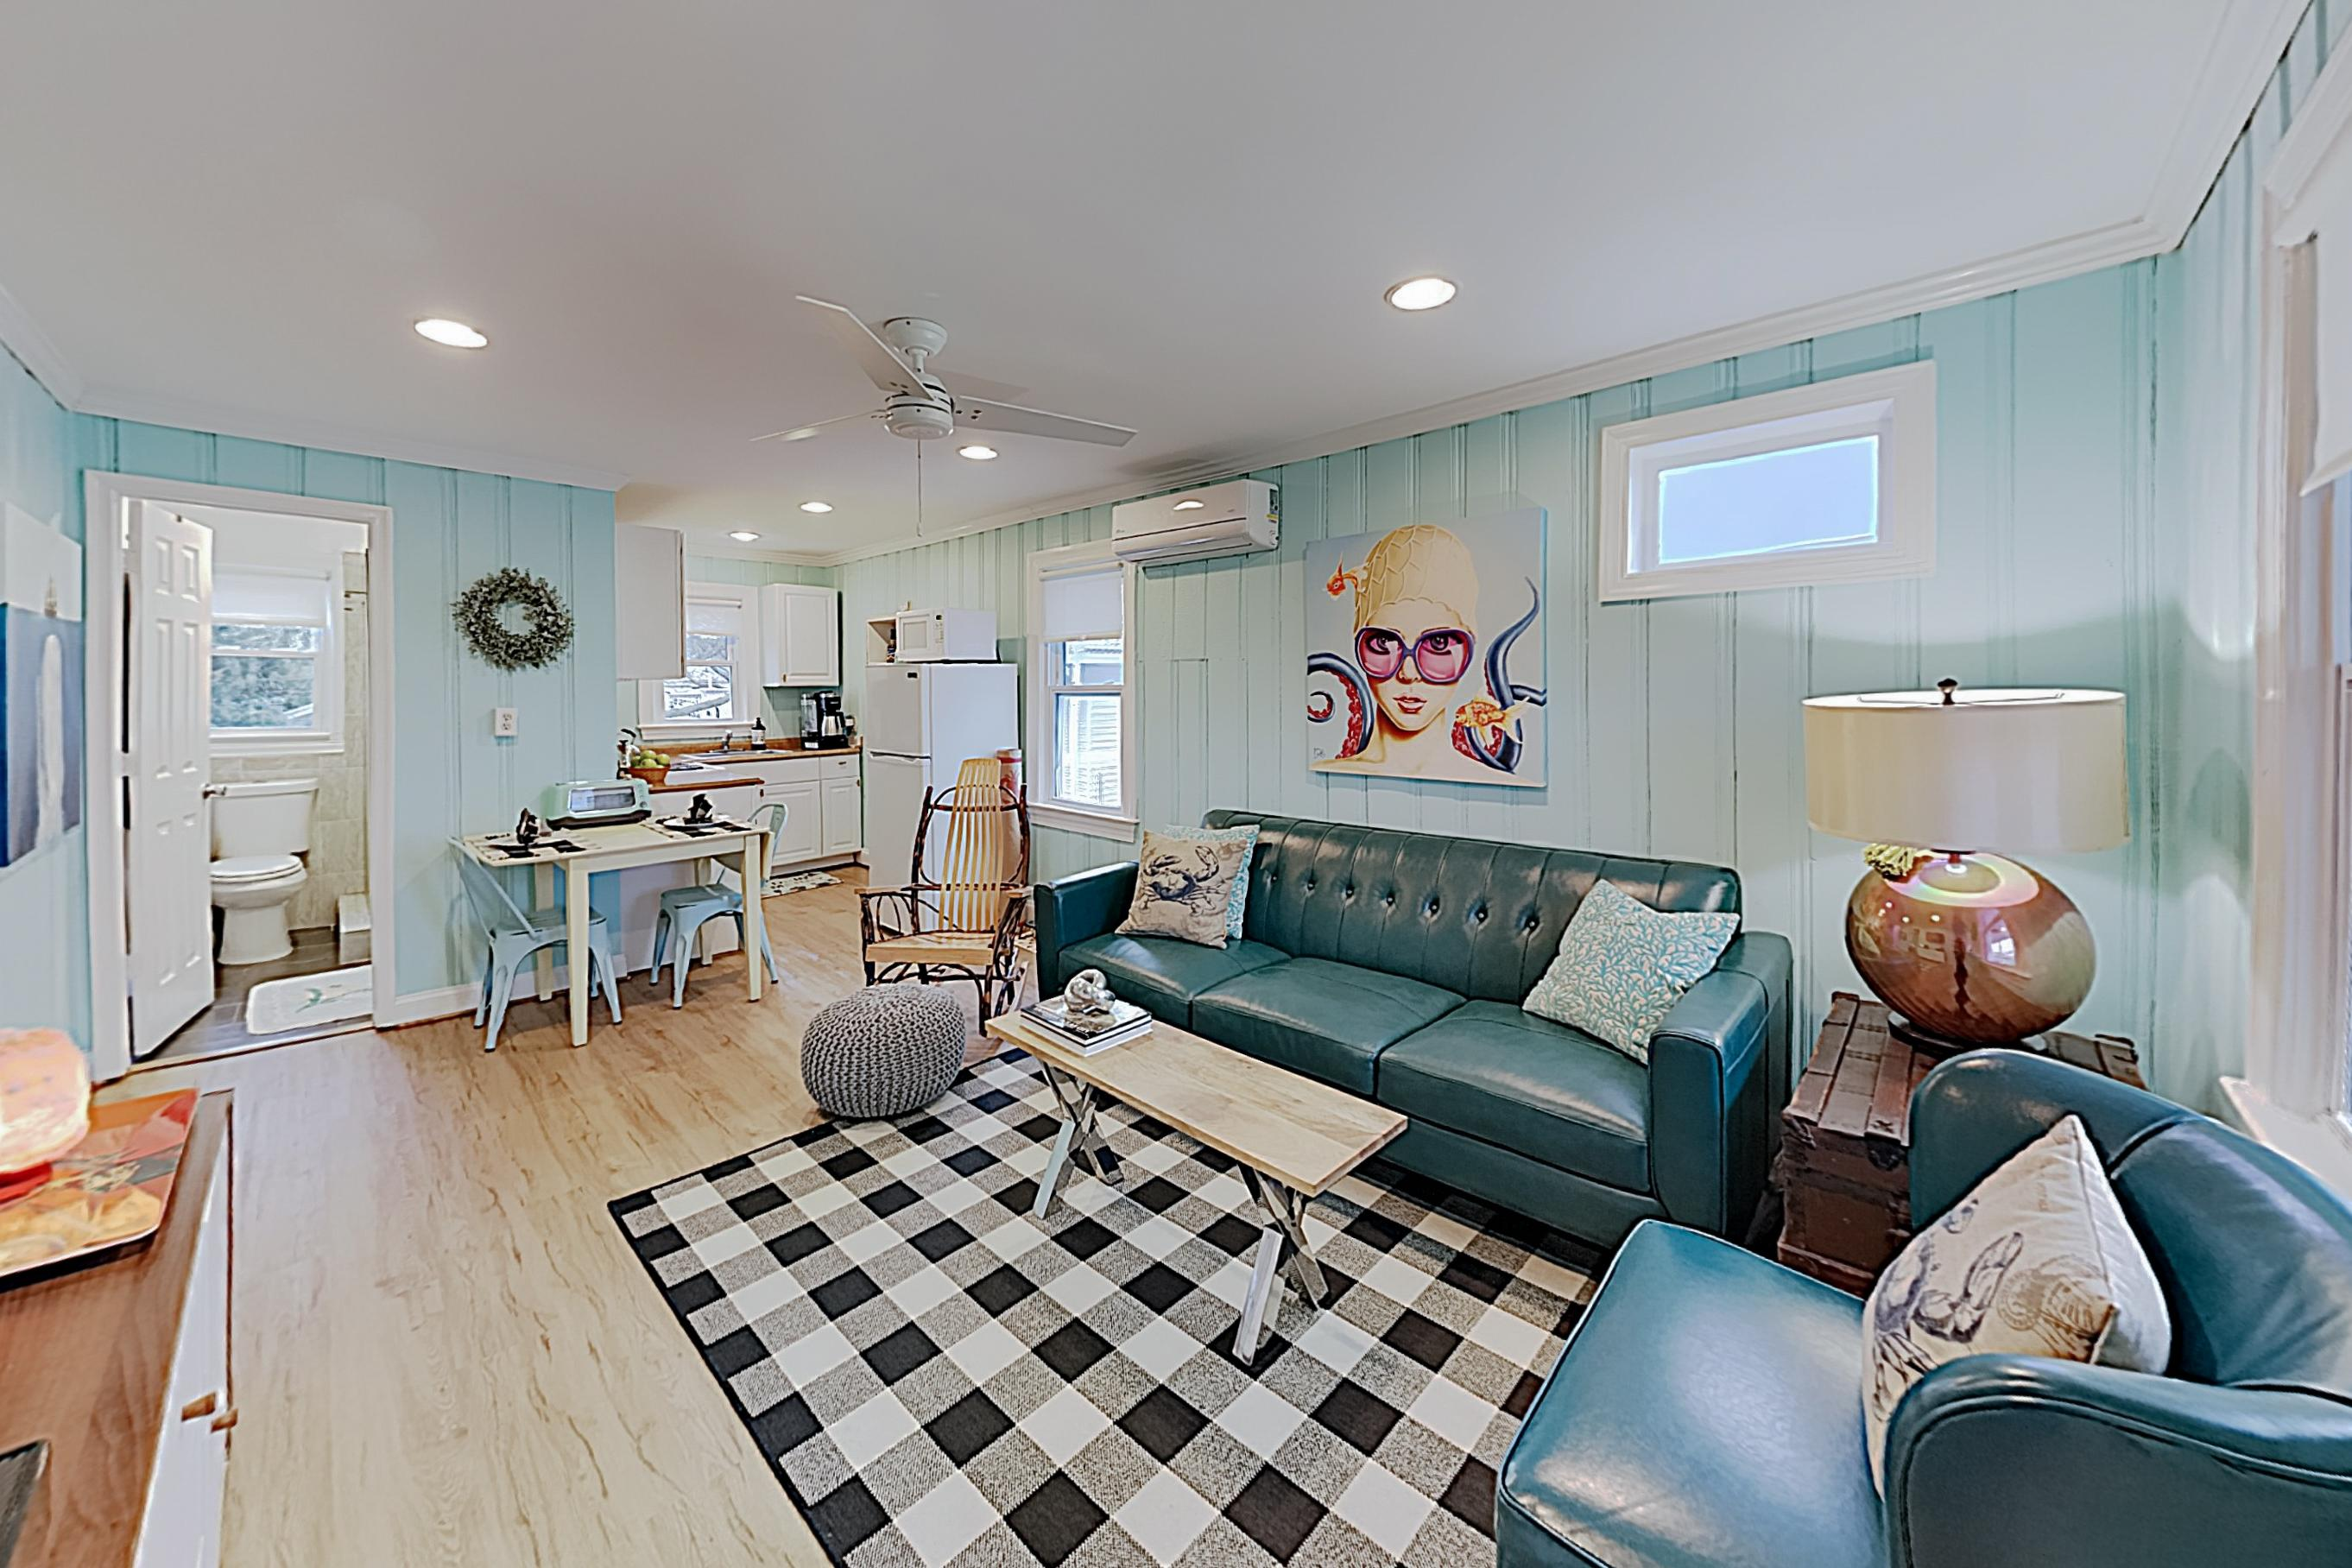 Welcome to Ocean City! This condo is professionally managed by TurnKey Vacation Rentals.